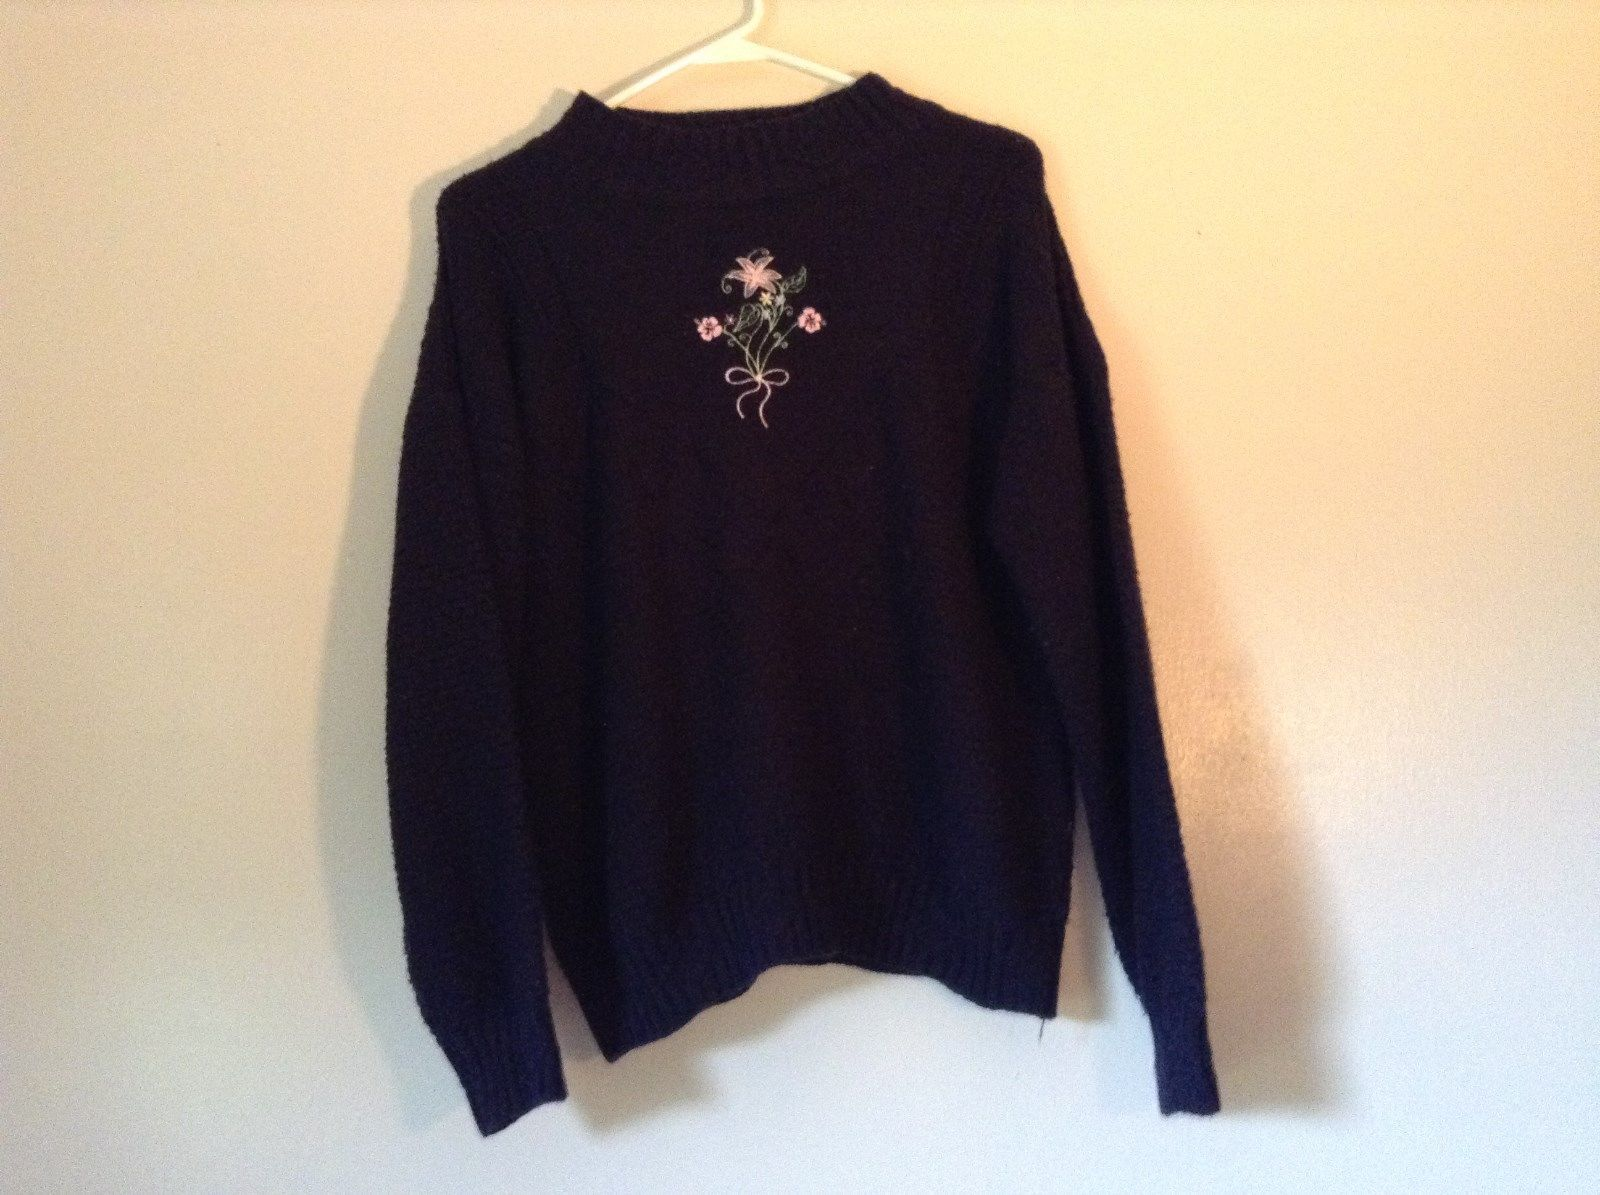 Liz Thomas Casuals Dark Navy Blue Long Sleeve Sweater with Flowers Size M